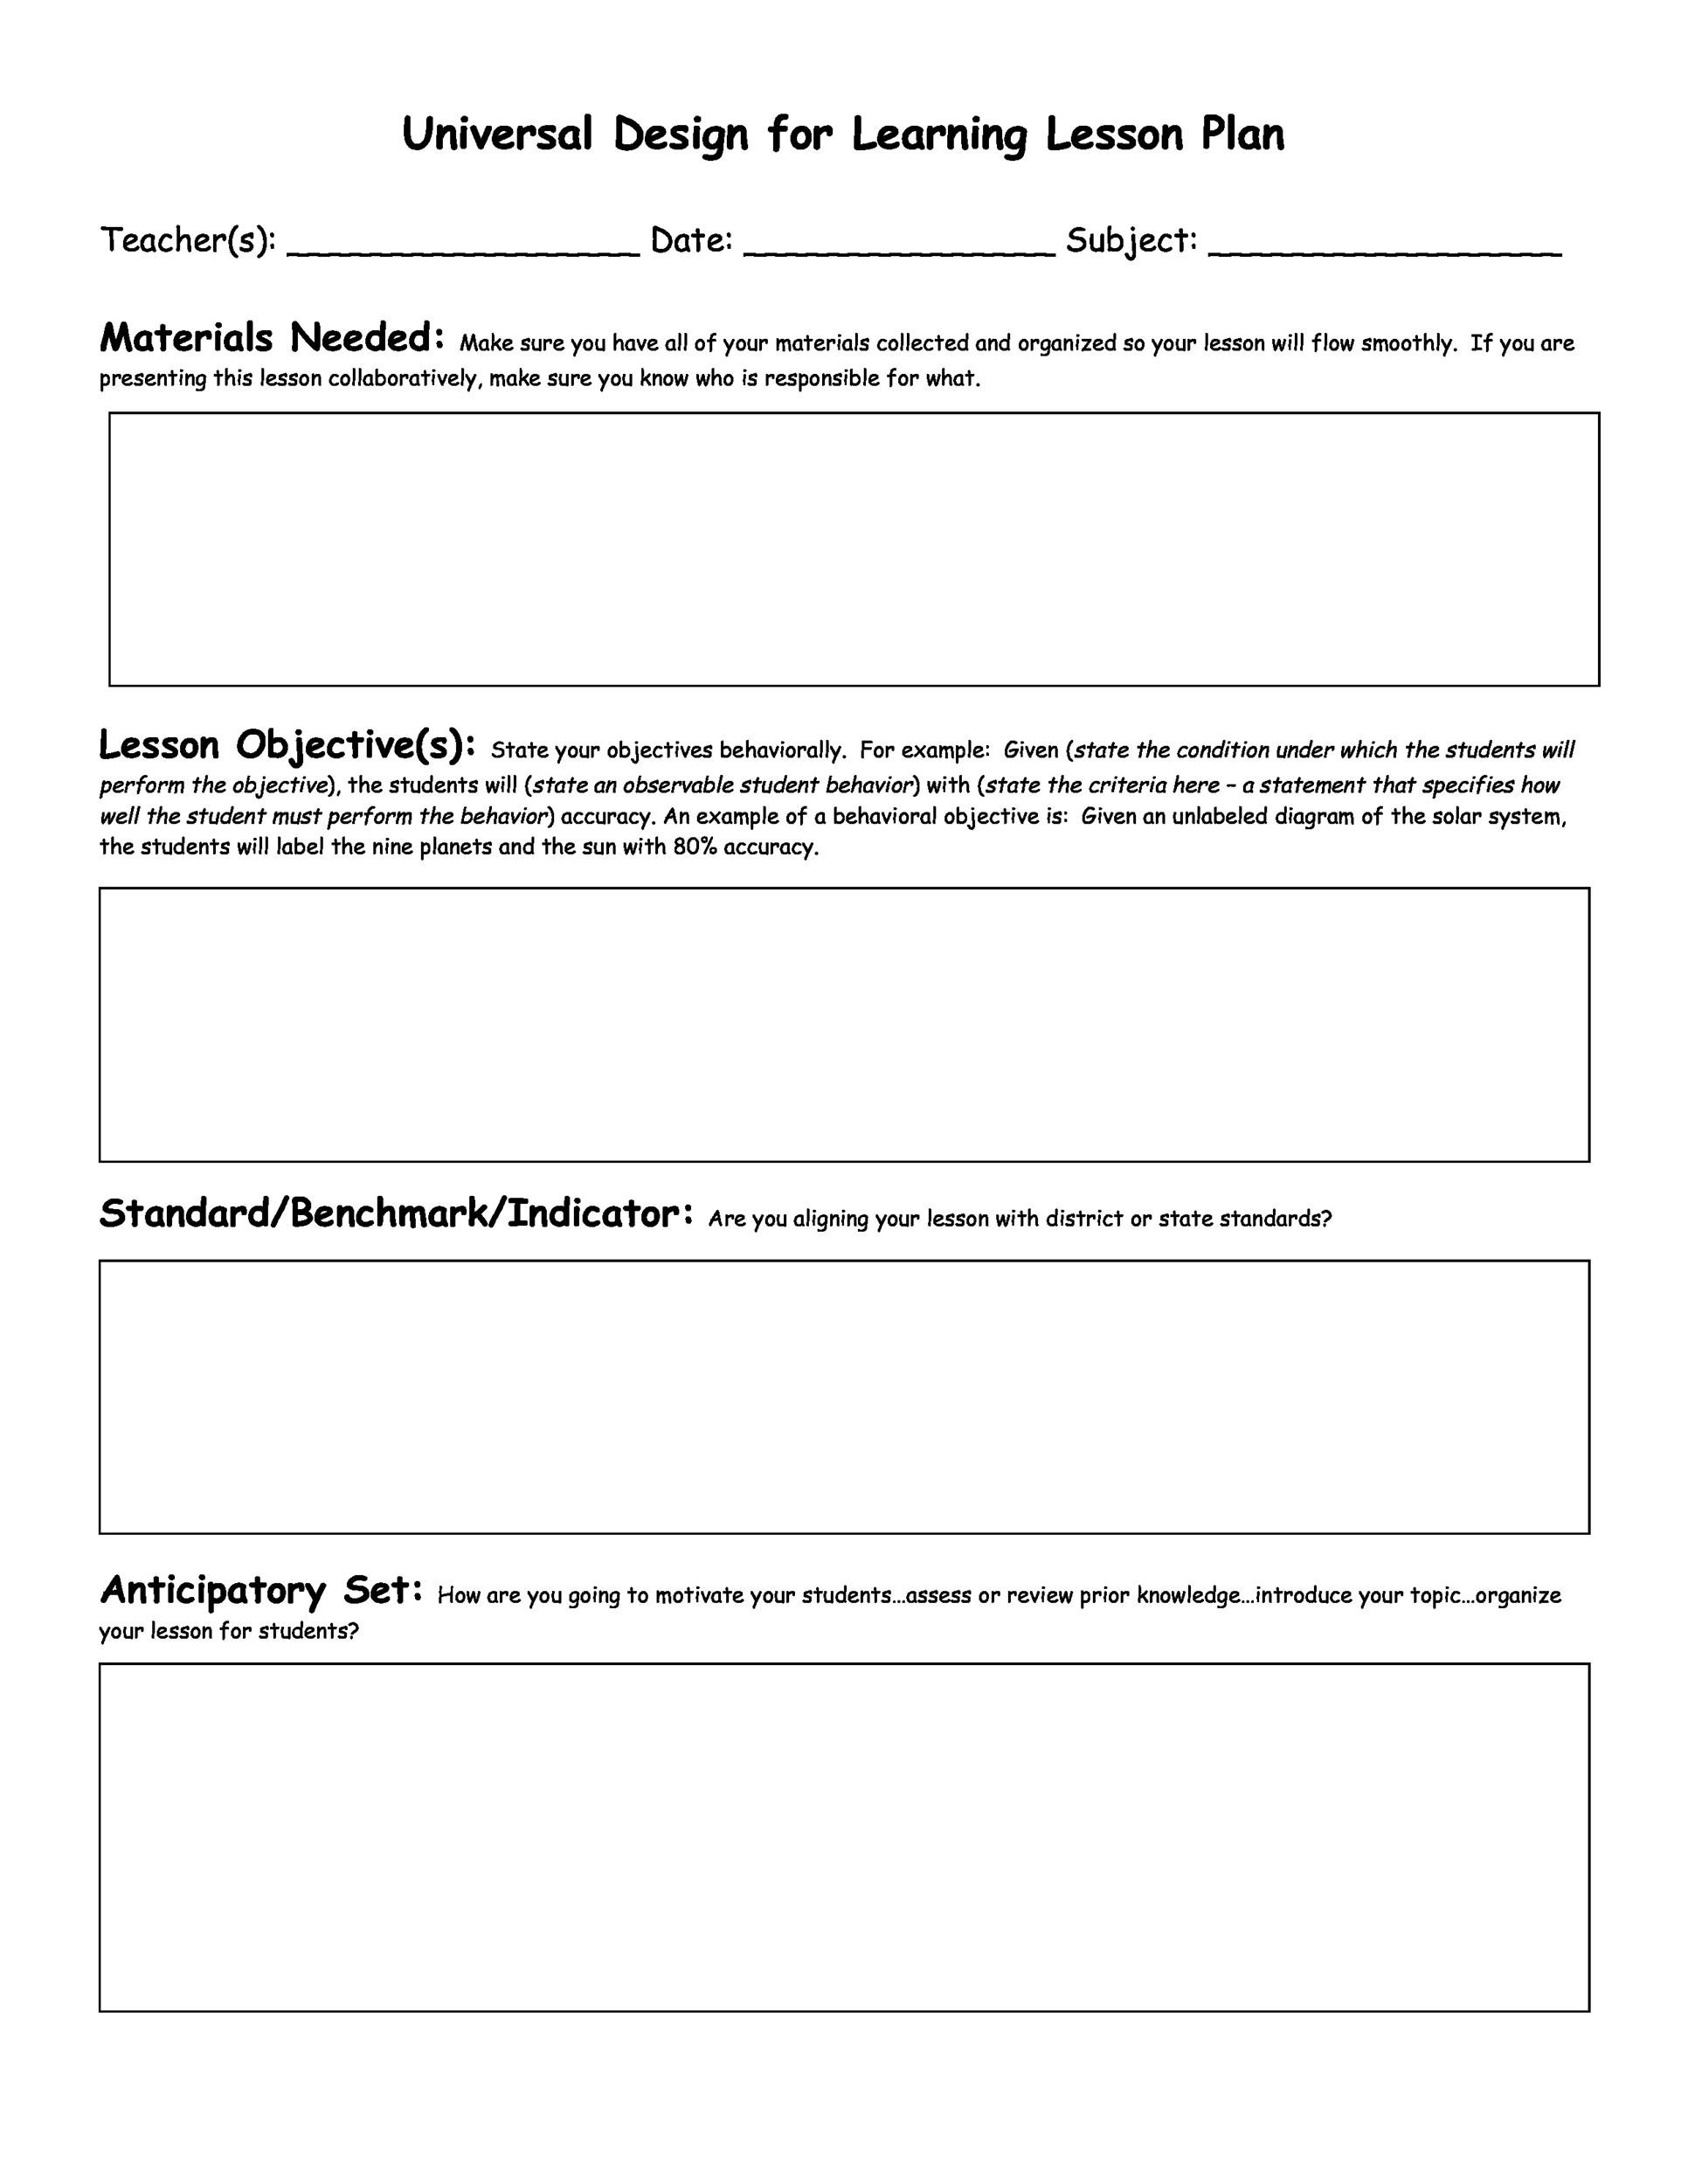 FREE Lesson Plan Templates Common Core Preschool Weekly - Lesson plan outline template